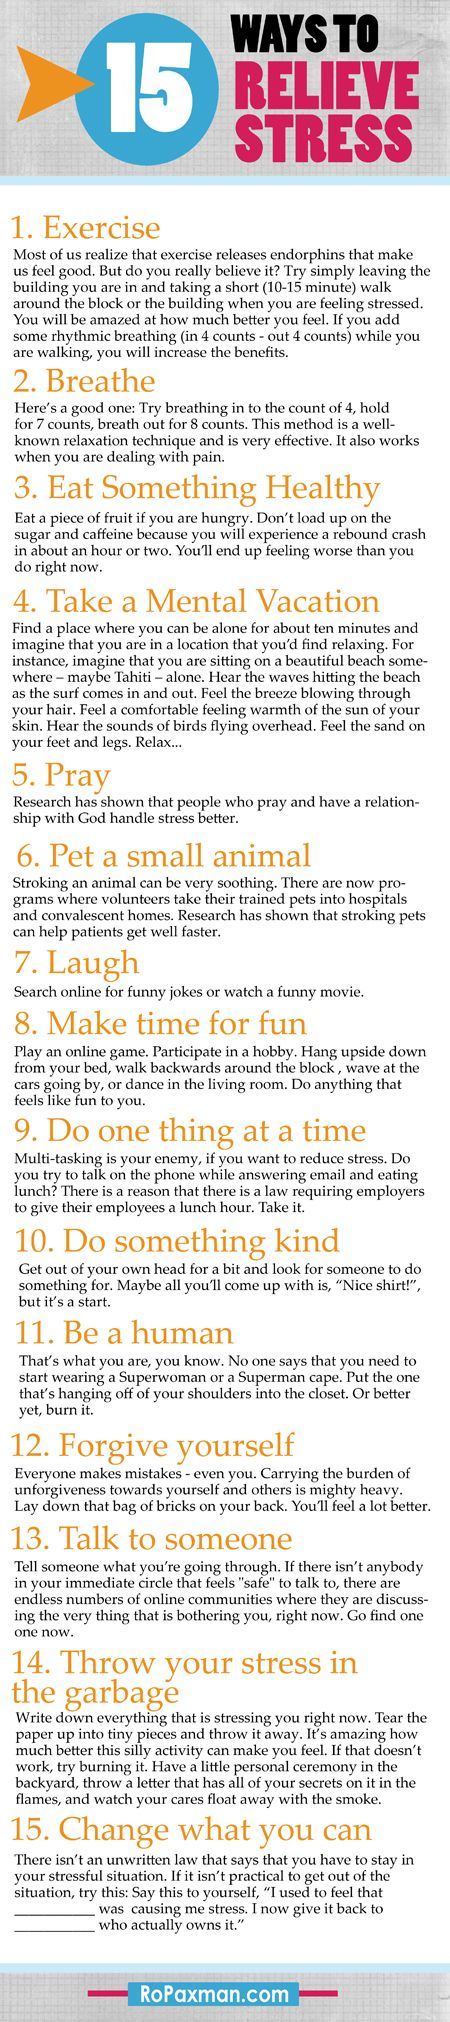 15 Ways to Relieve Stress -- if there is no cure, sometimes doing a million little things can add up and make life bearable